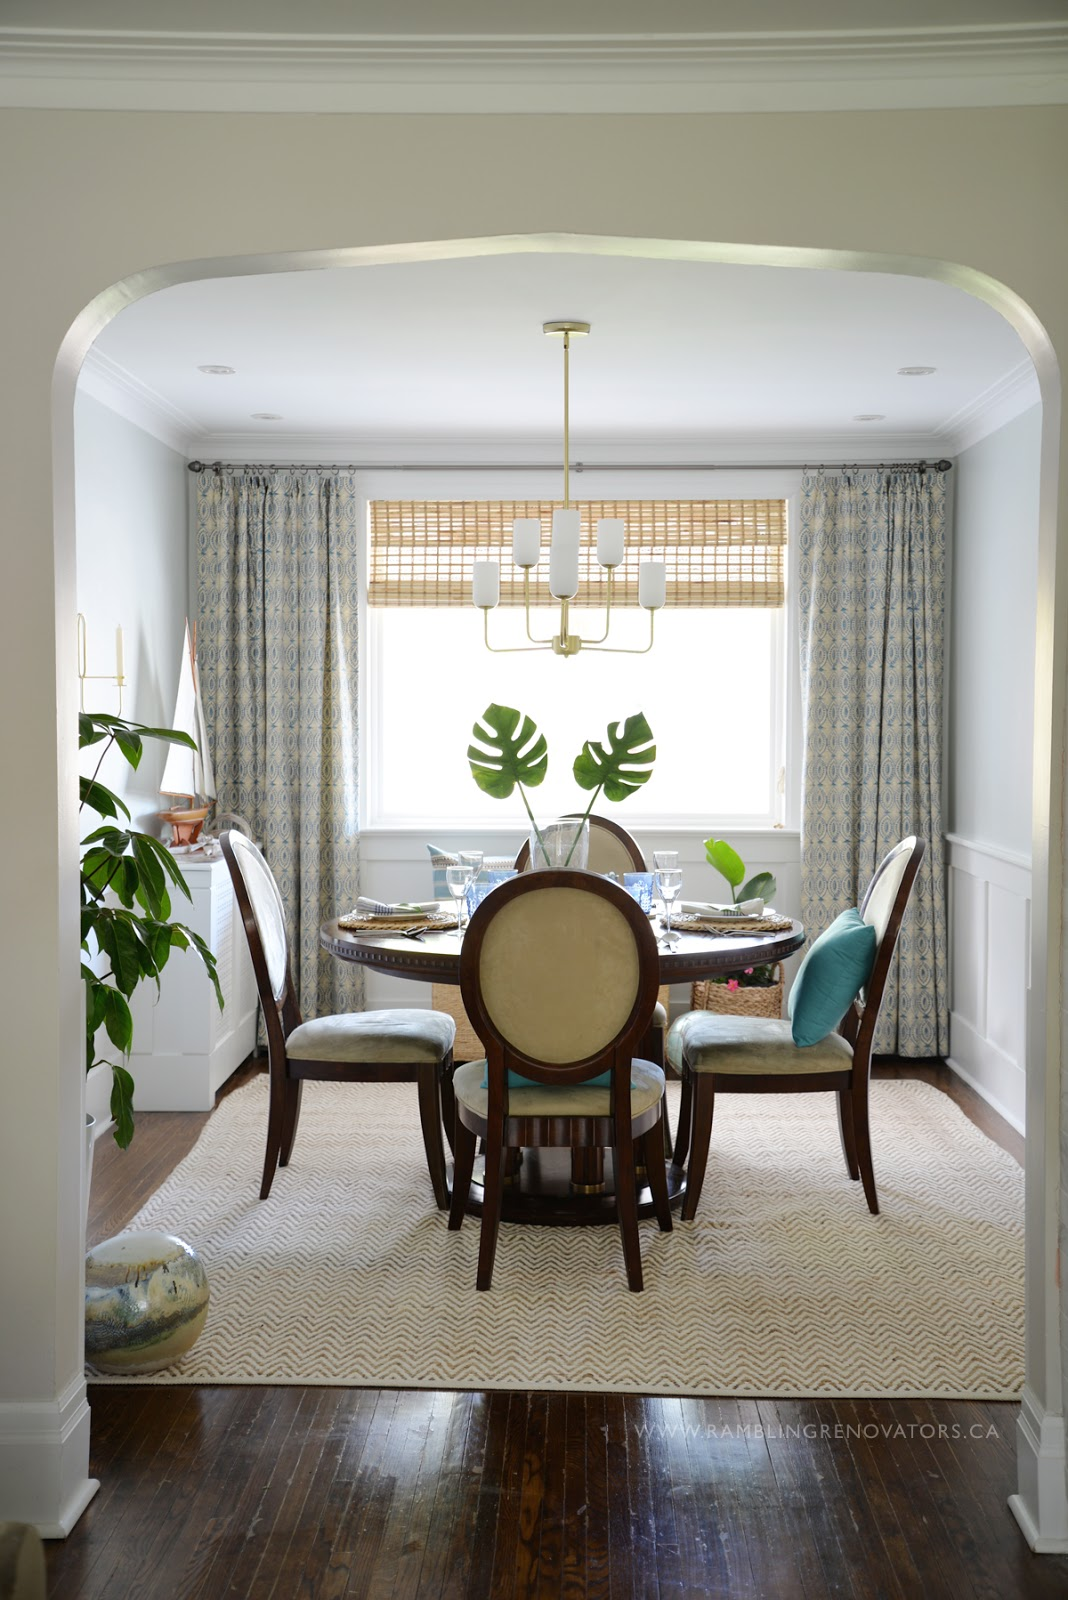 Ramblingrenovators.ca | tropical dining room, round dining table, gold chandelier, bamboo blind, naga blue curtain